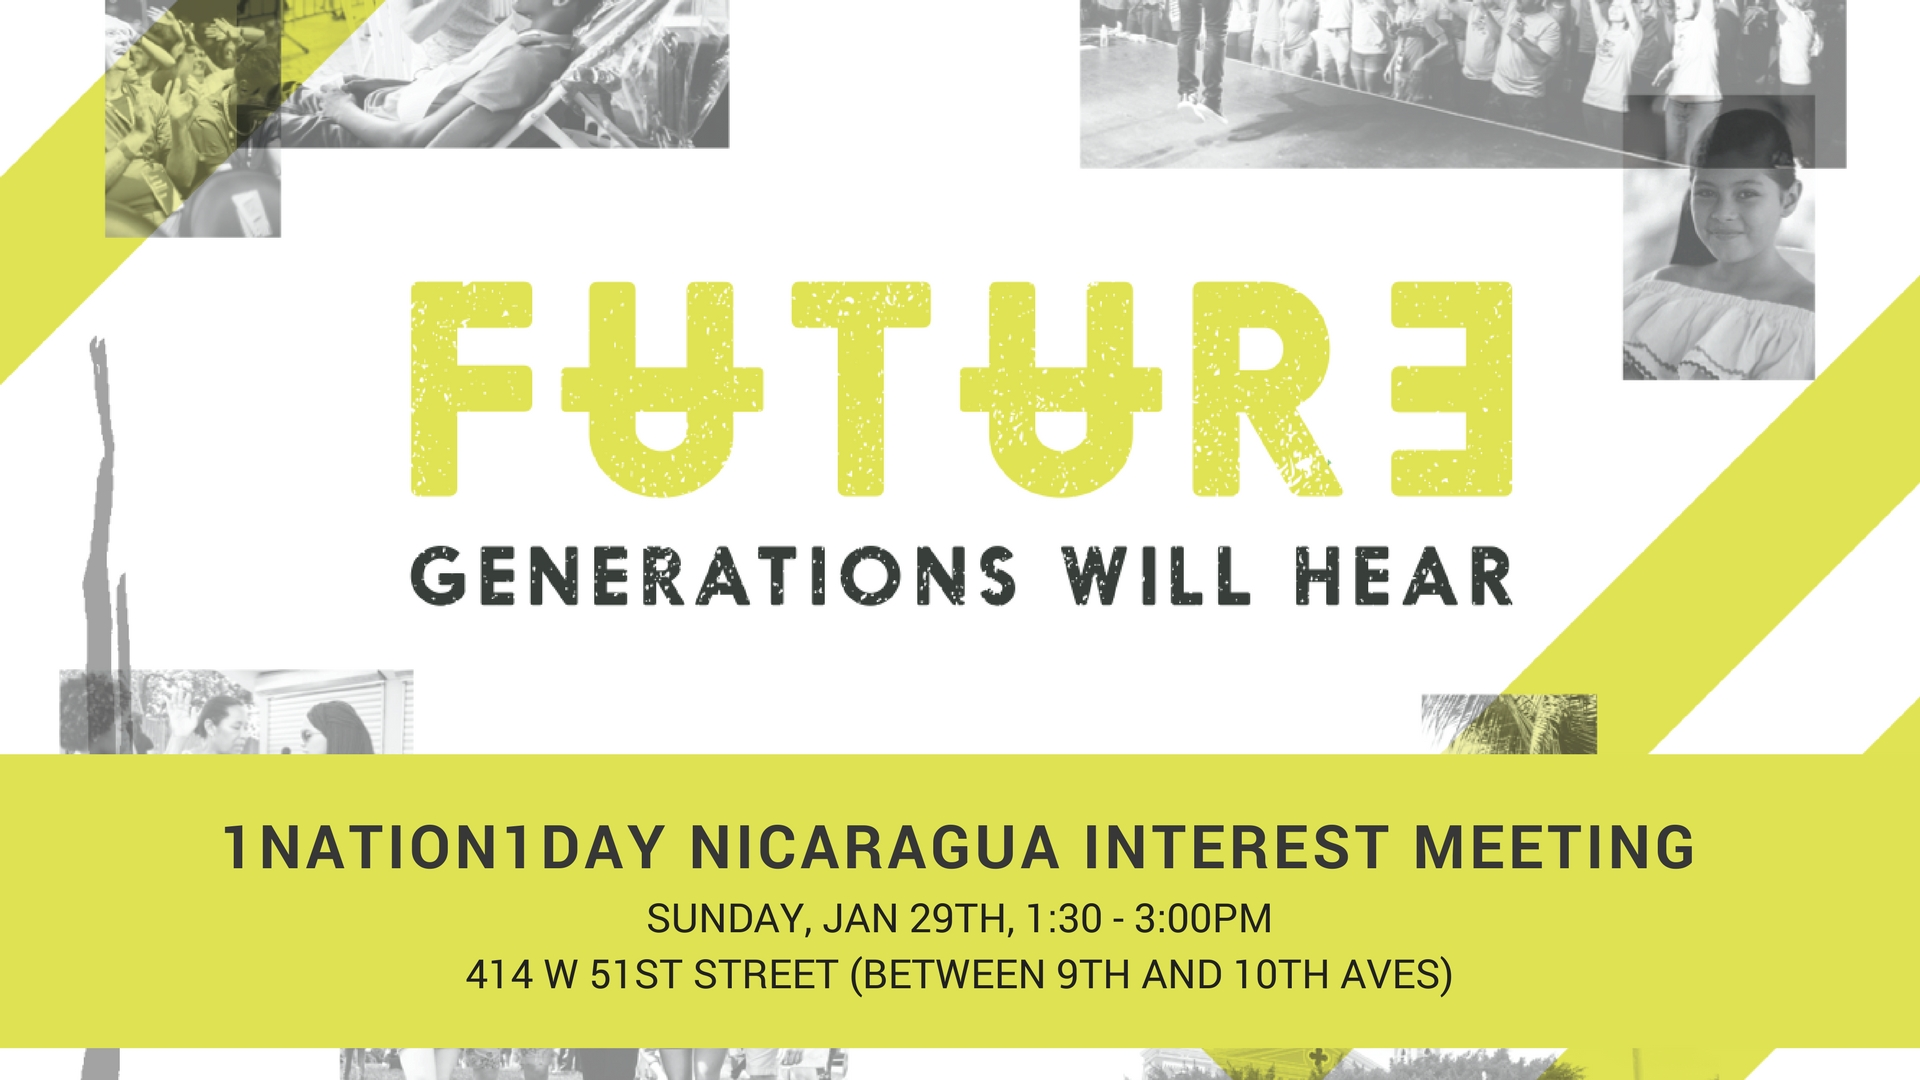 1Nation1Day Nicaragua Interest Meeting